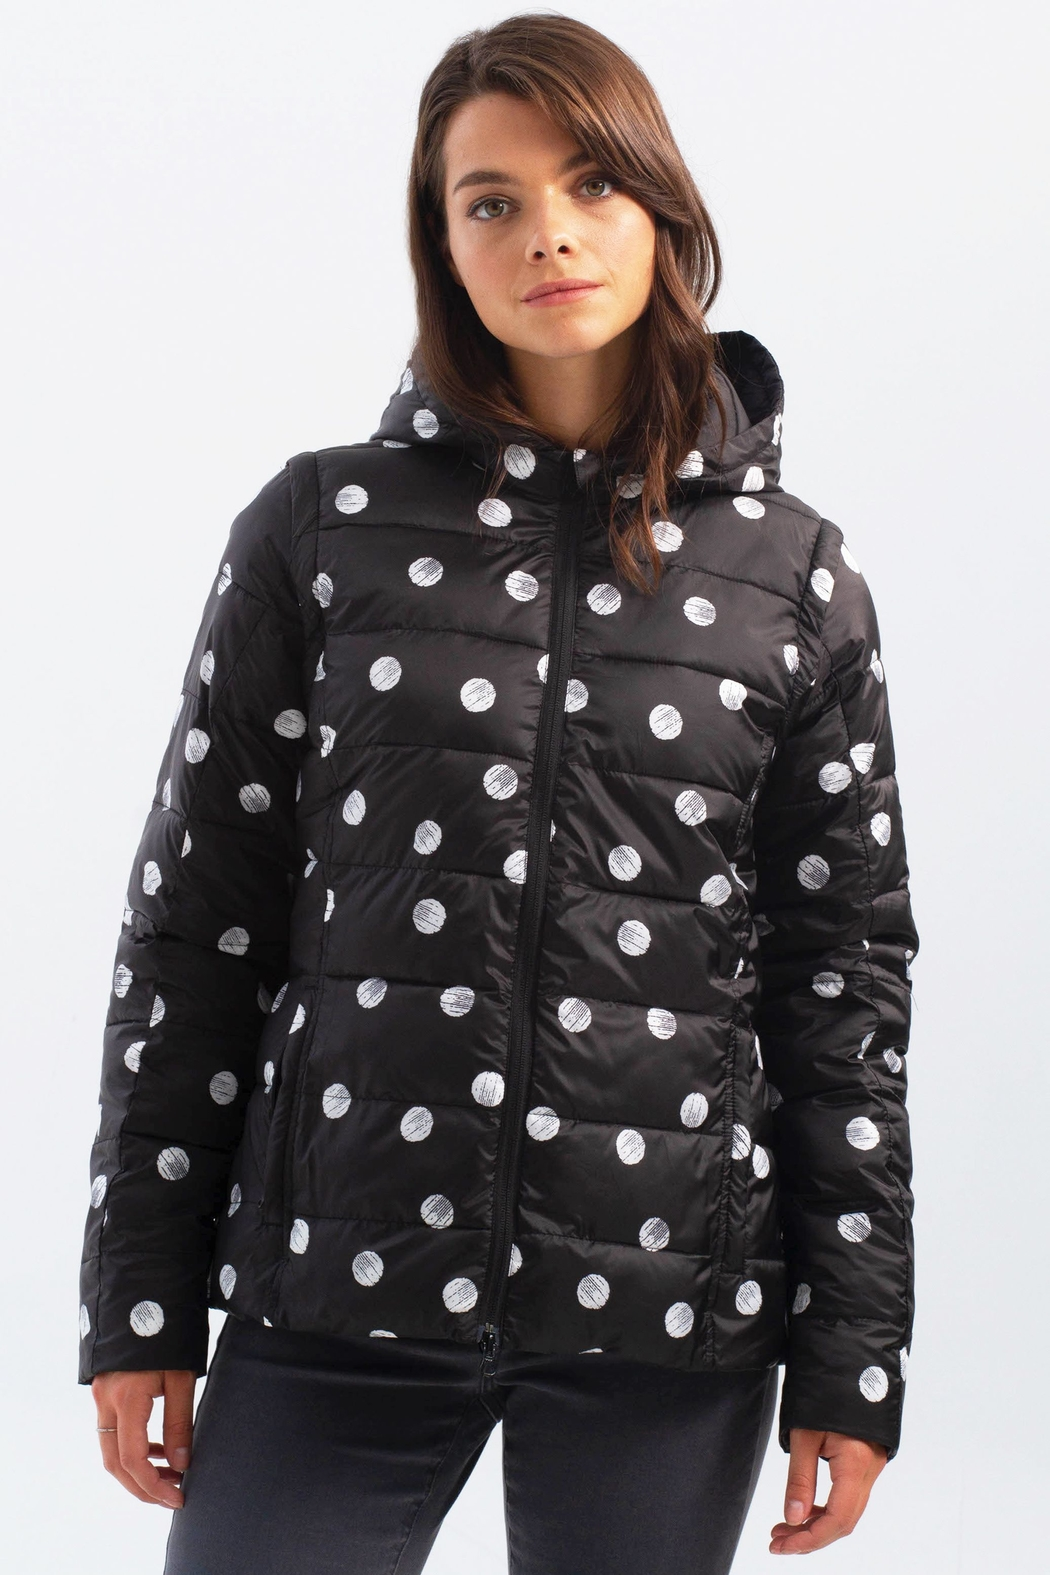 Charlie B. Polka Dot Four Way Puffer Jacket - Front Full Image